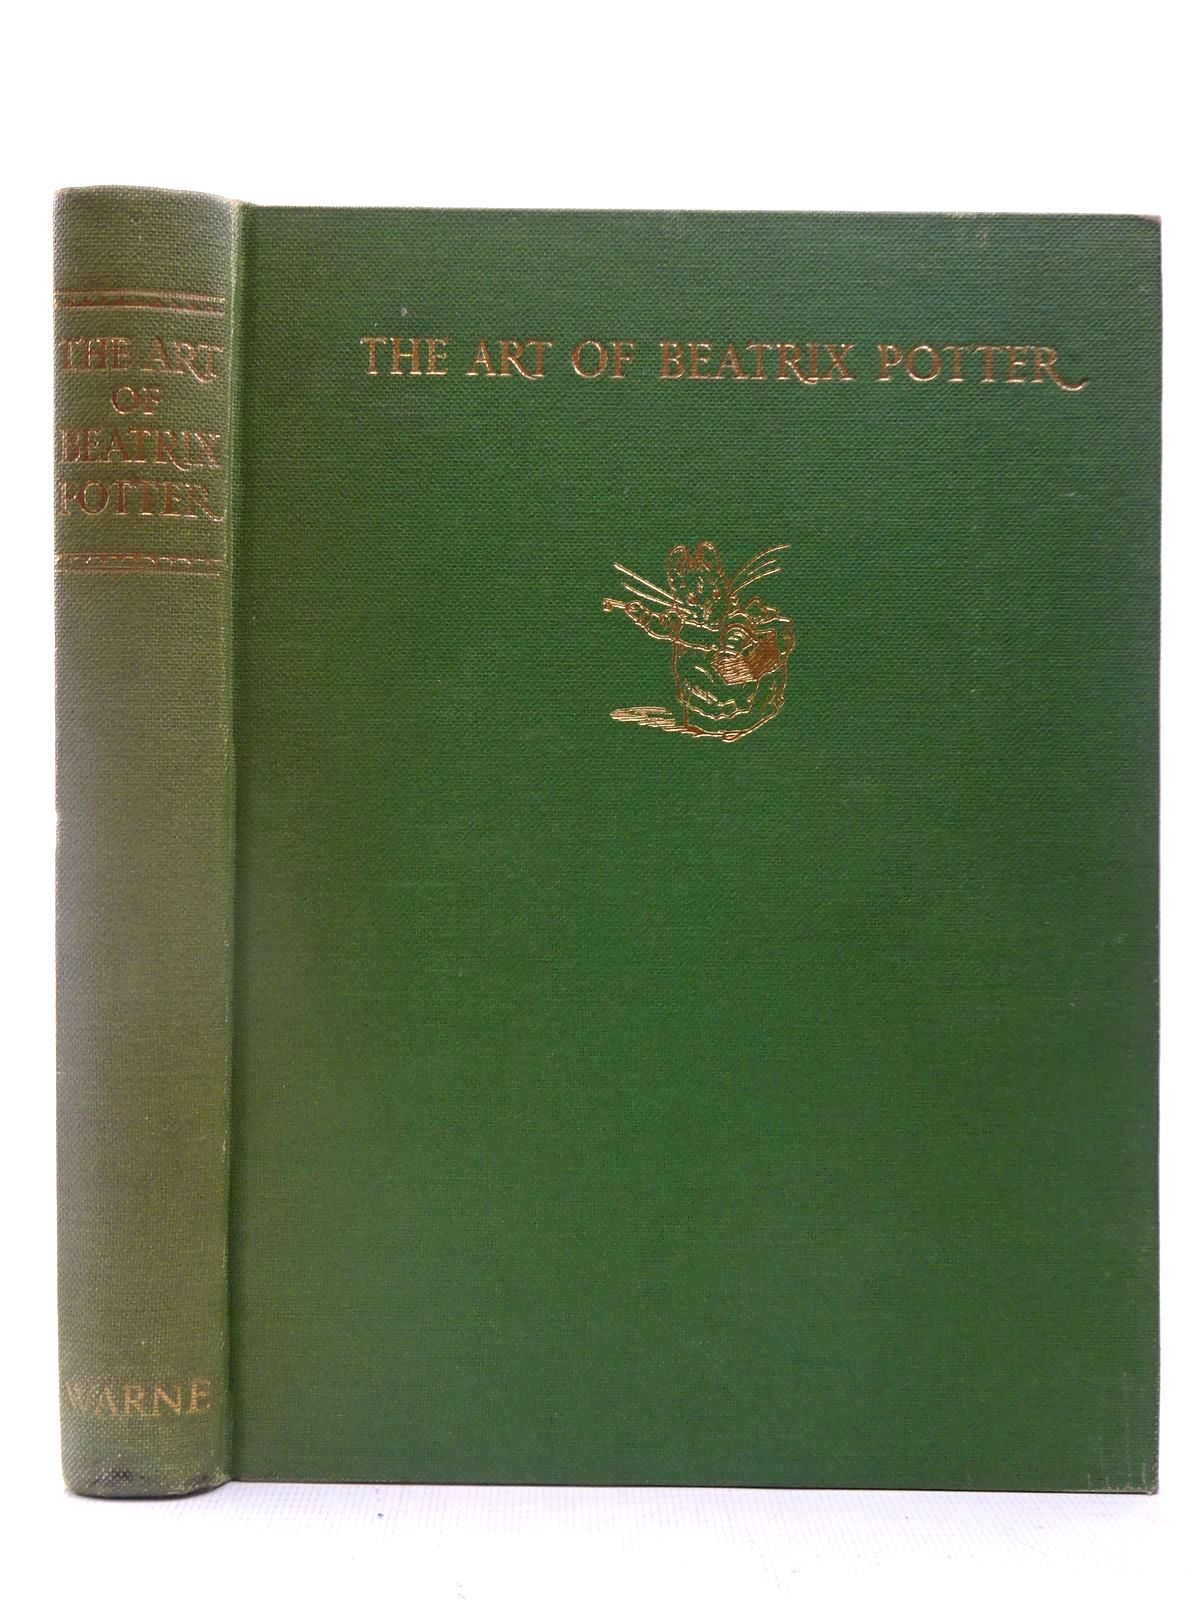 Photo of THE ART OF BEATRIX POTTER written by Linder, Leslie<br />Moore, Anne Carroll<br />Linder, Enid<br />Potter, Beatrix illustrated by Potter, Beatrix published by Frederick Warne & Co Ltd. (STOCK CODE: 2127271)  for sale by Stella & Rose's Books